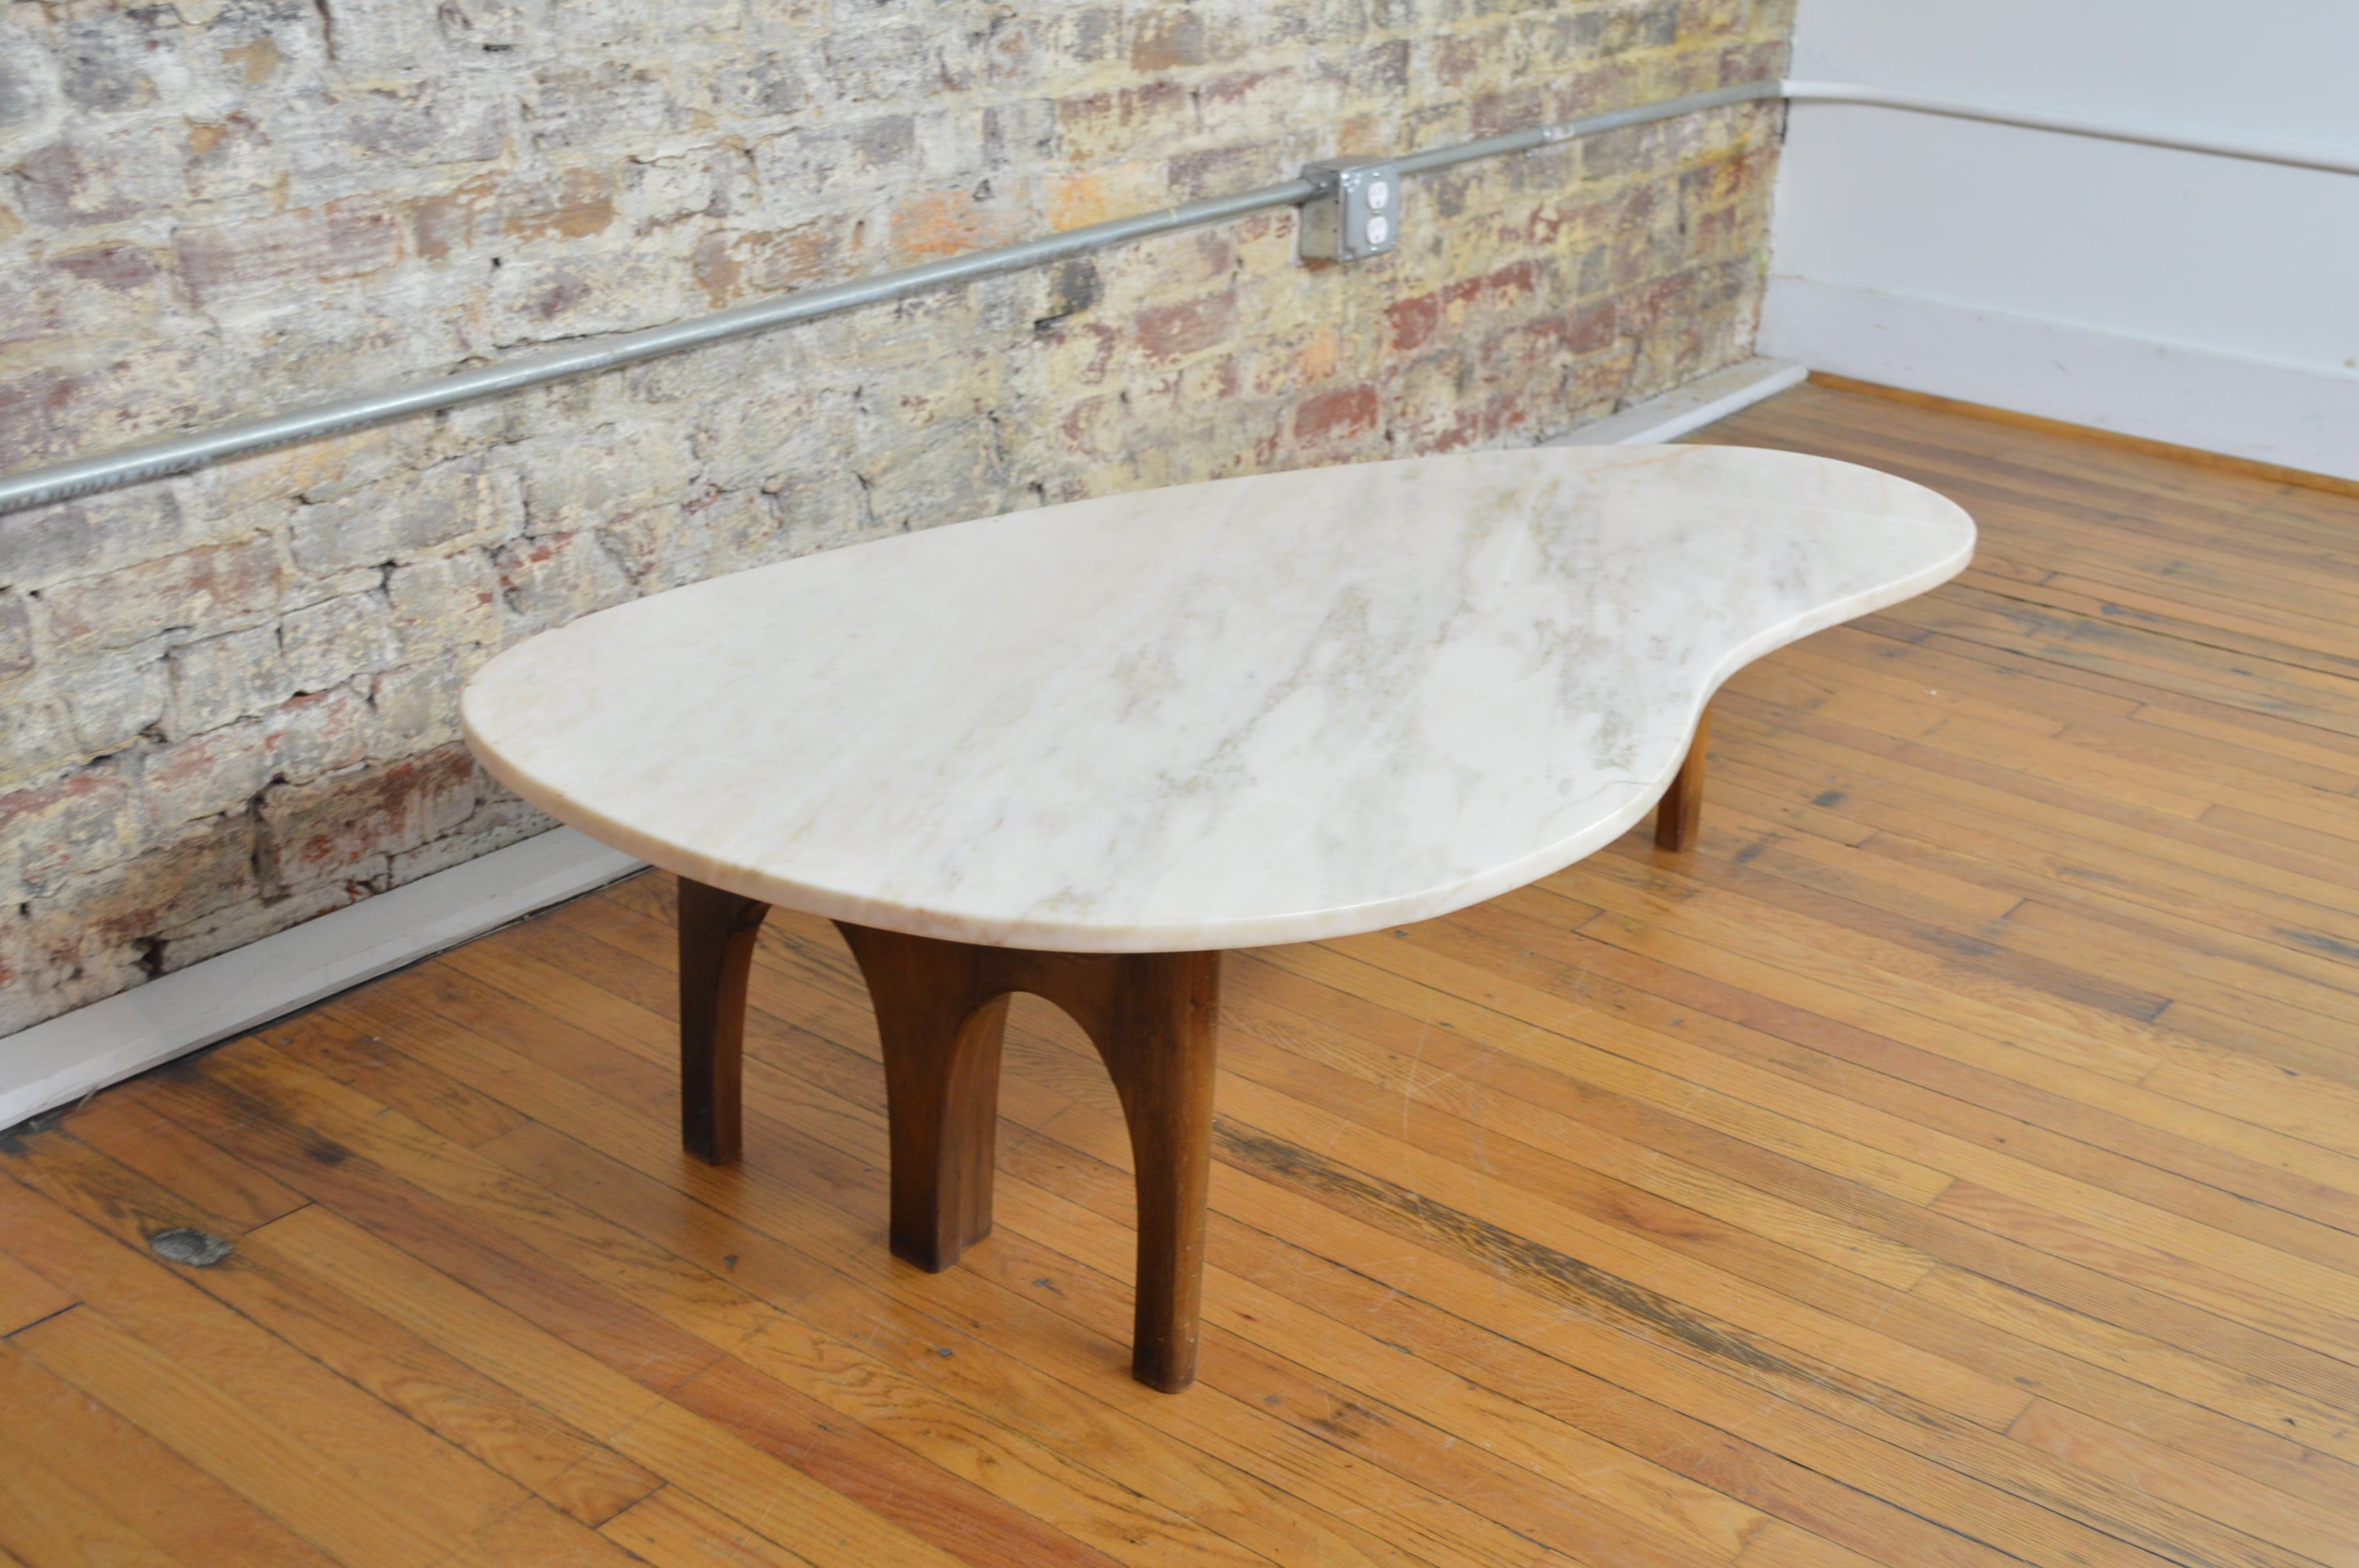 Unique Harvey Probber Style Mid Century Modern Marble Kidney Shaped - Mid century modern kidney shaped coffee table